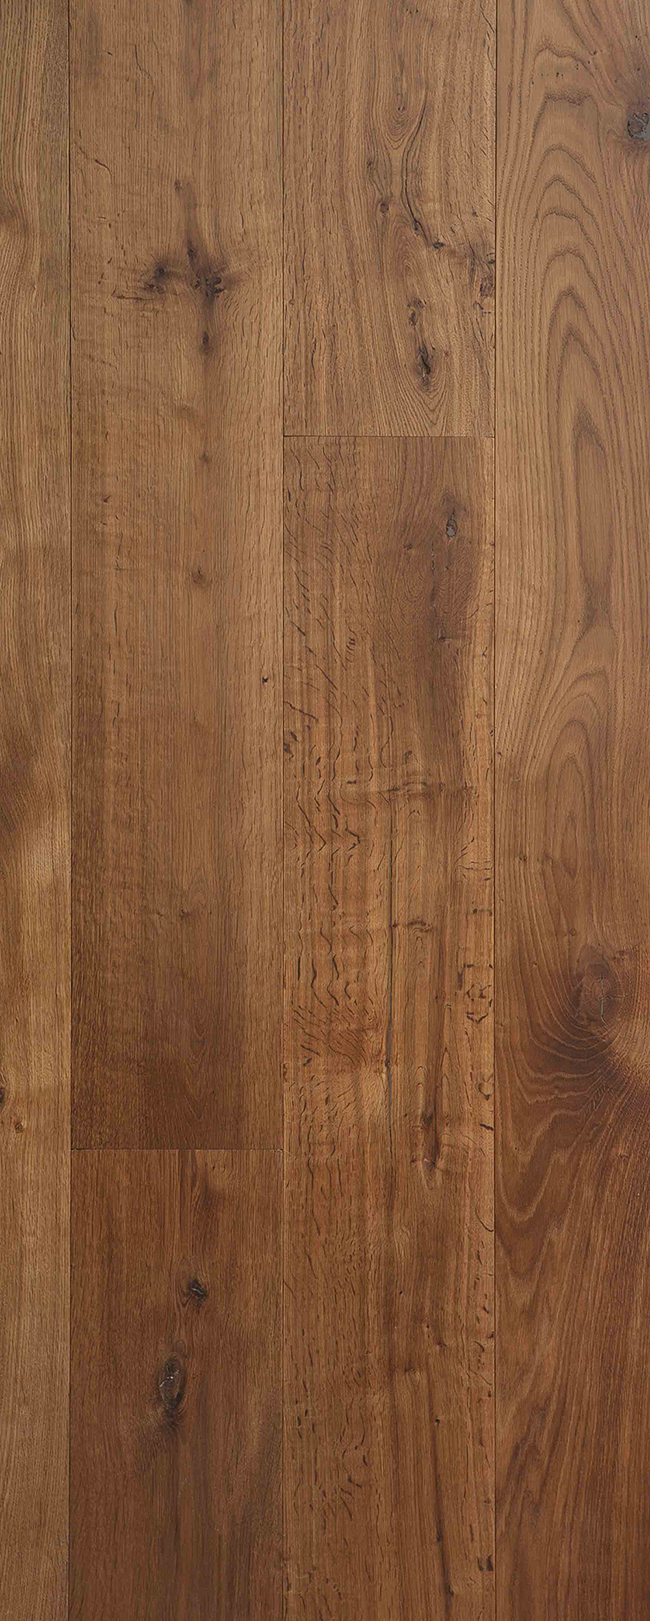 THERMAL Engineered Rustic Oak.jpg